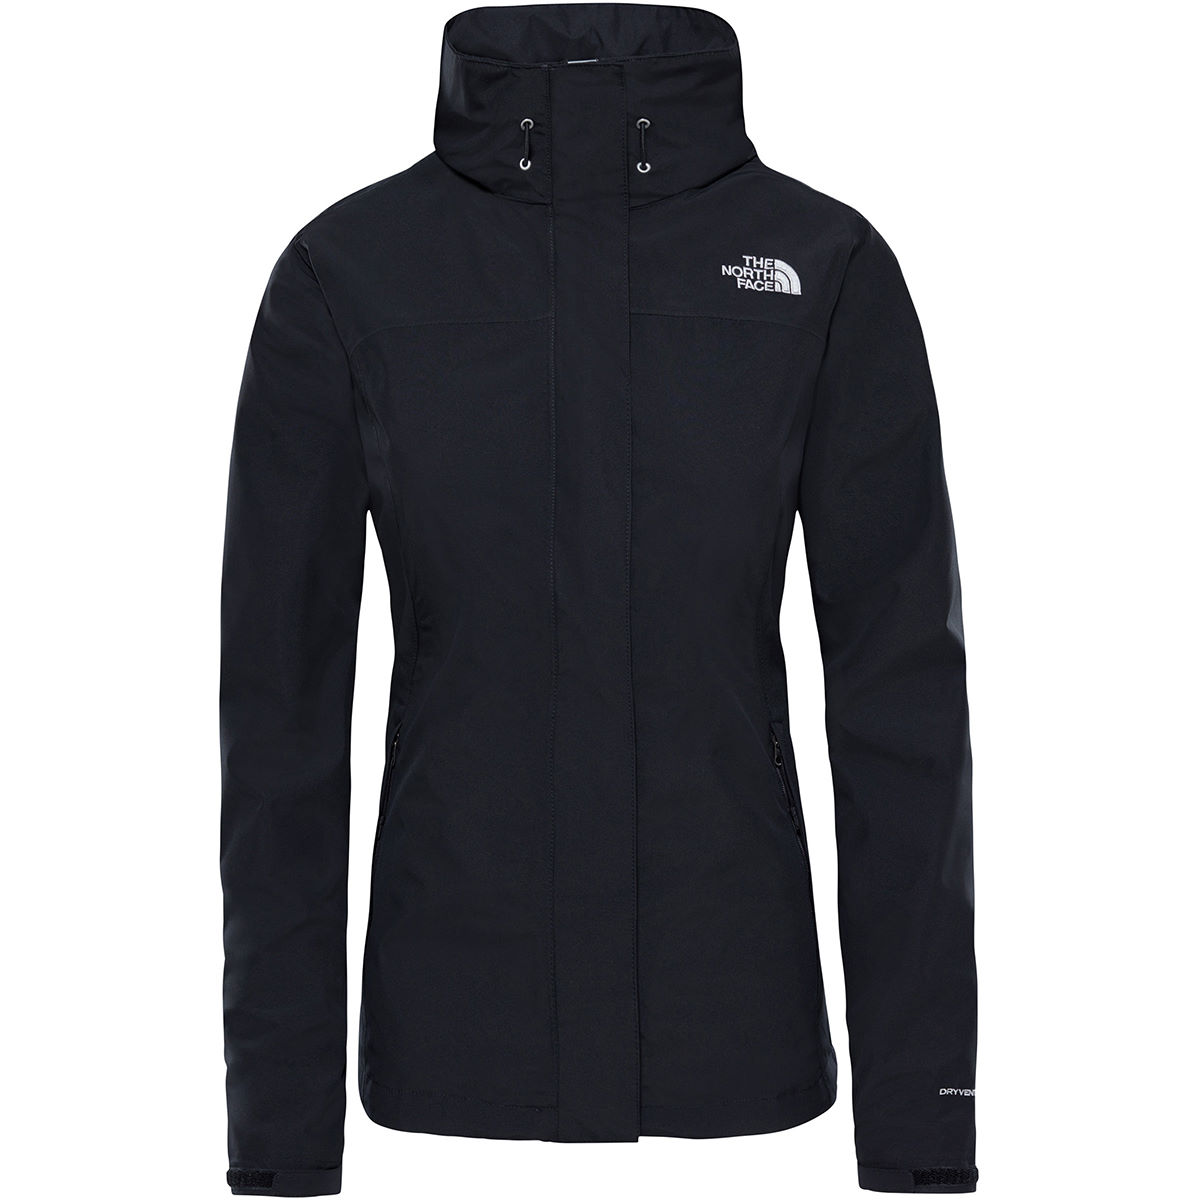 The North Face The North Face Womens Sangro Jacket   Jackets